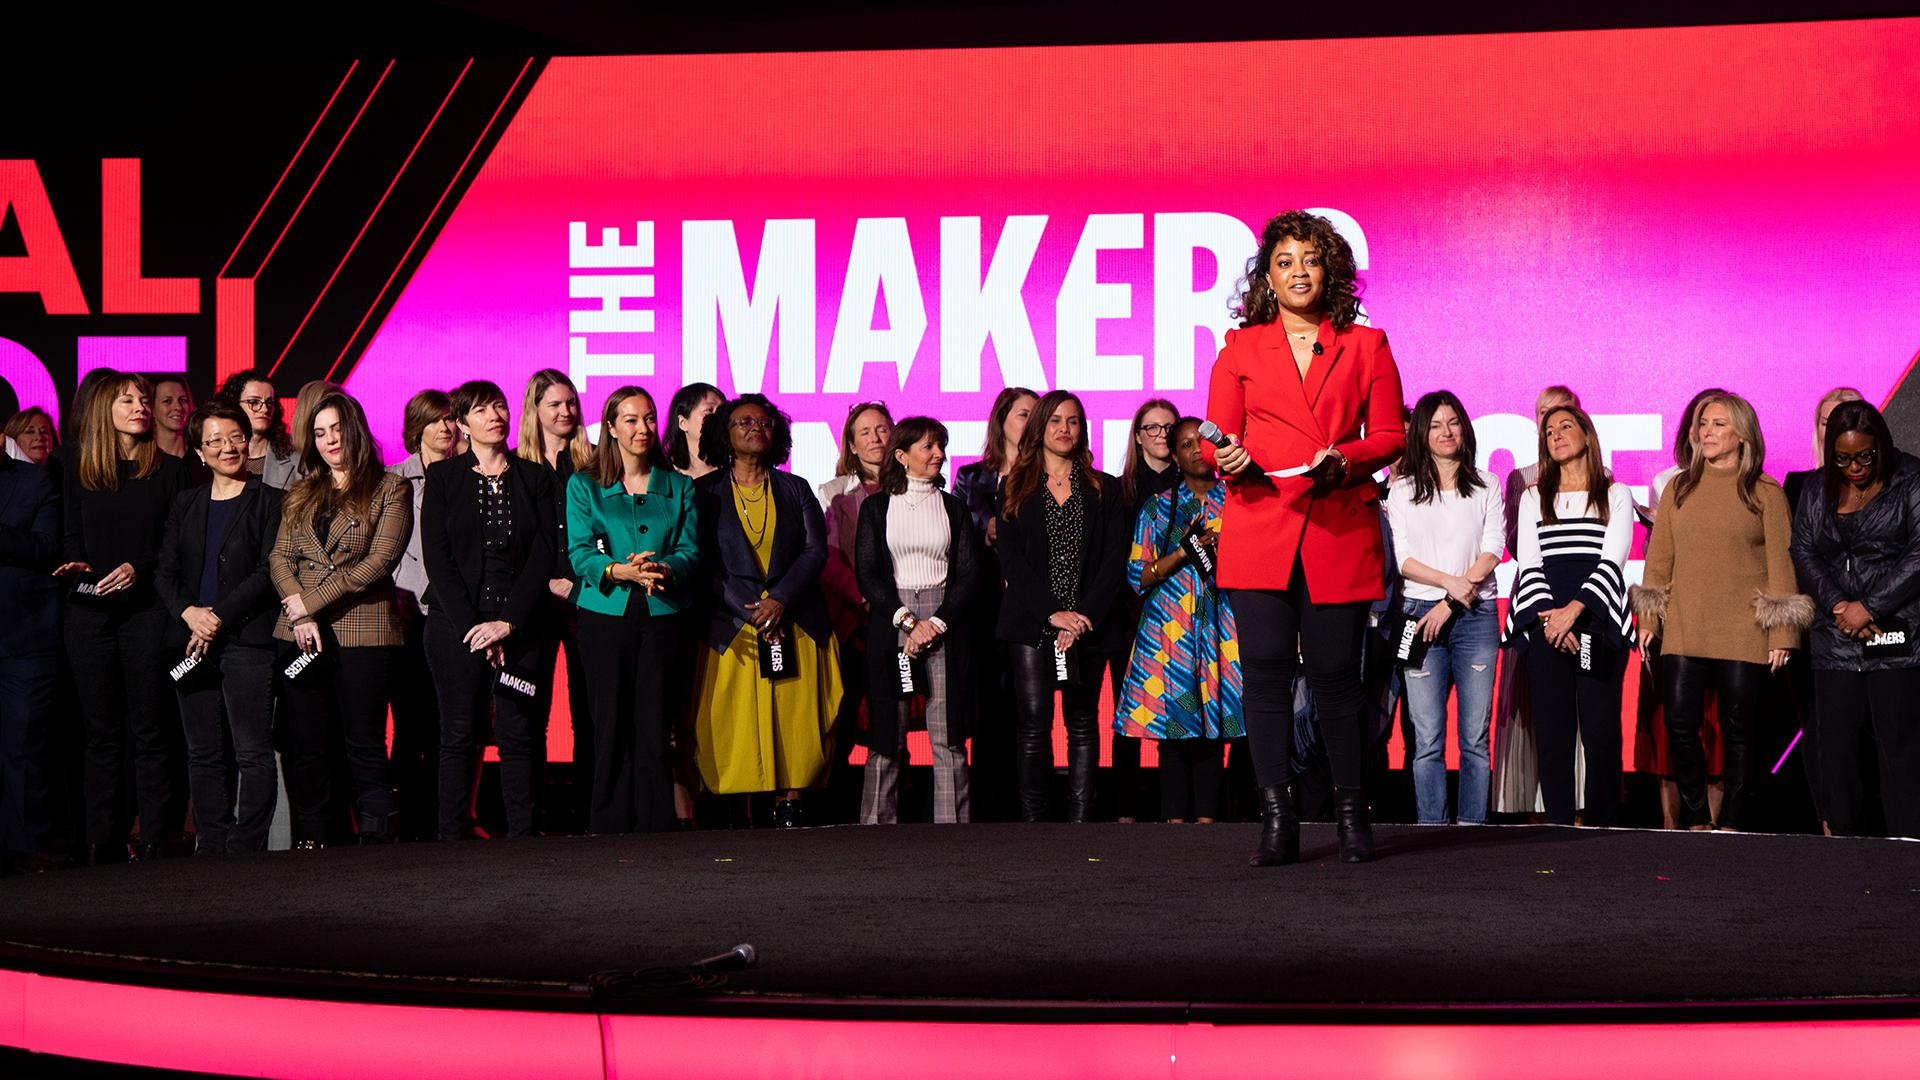 More Than 50 Companies Pledge to Advance Women at The 2019